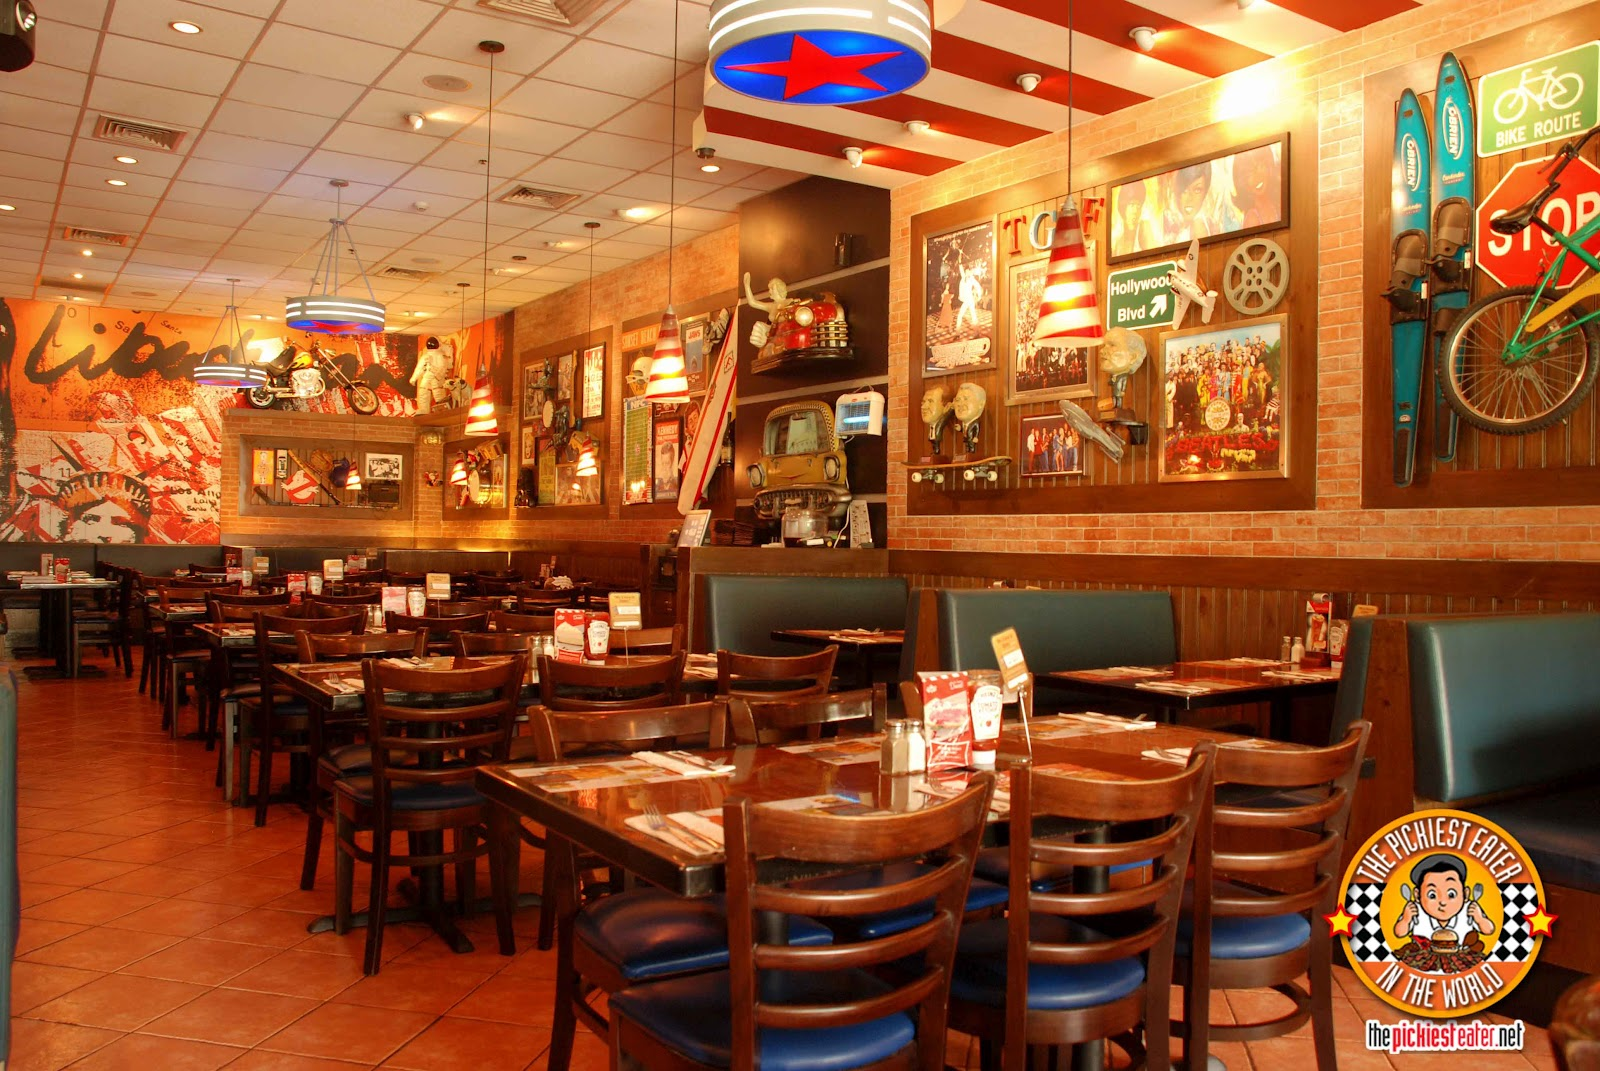 TGIFridays Looks Sort Of Like A British Pub But With The Energy Much More Electric From Zany Costumes Their Servers Which Often Includes